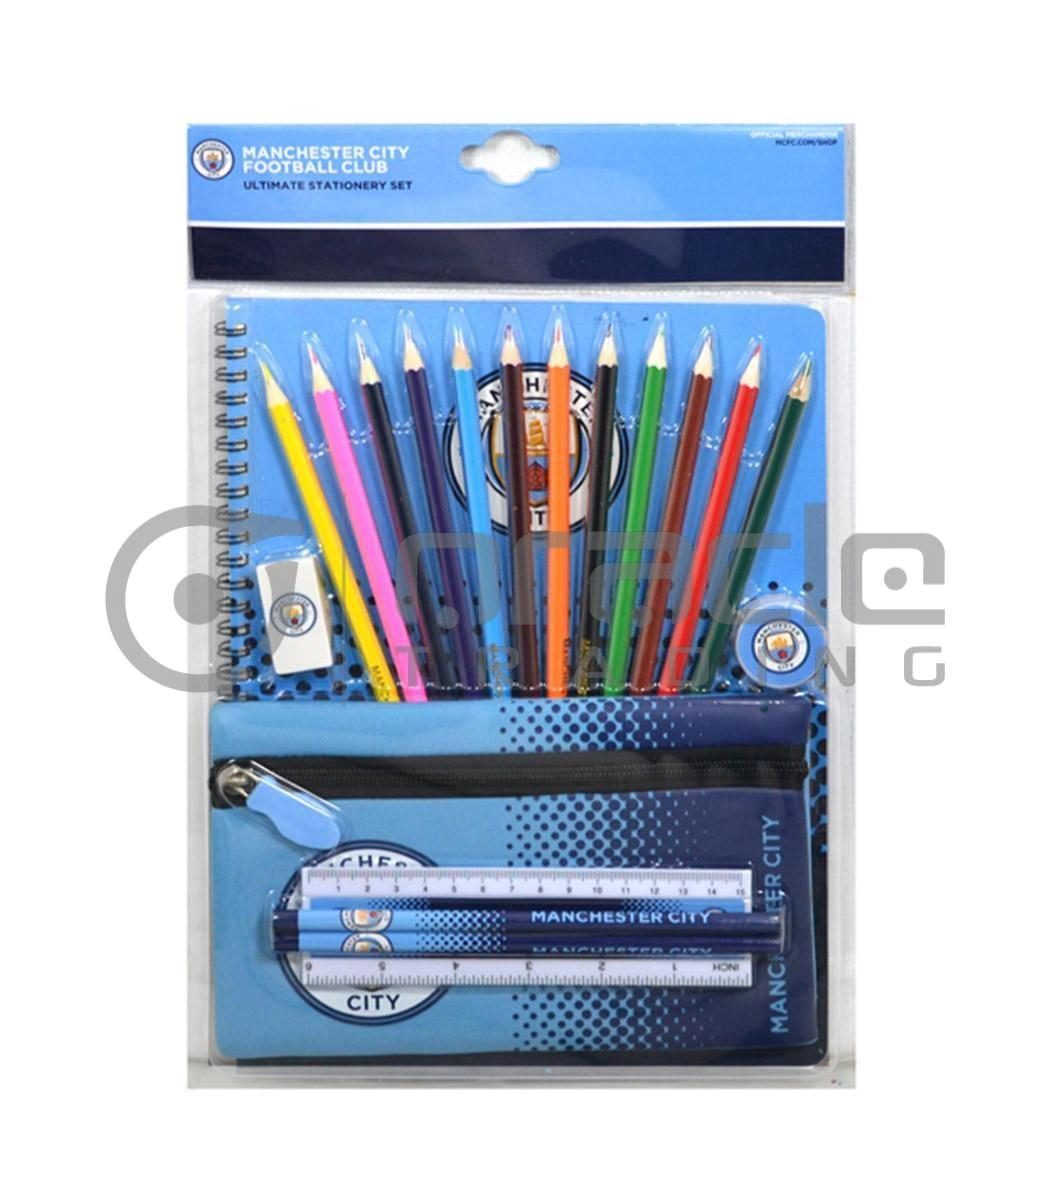 Manchester City Ultimate Stationery Set